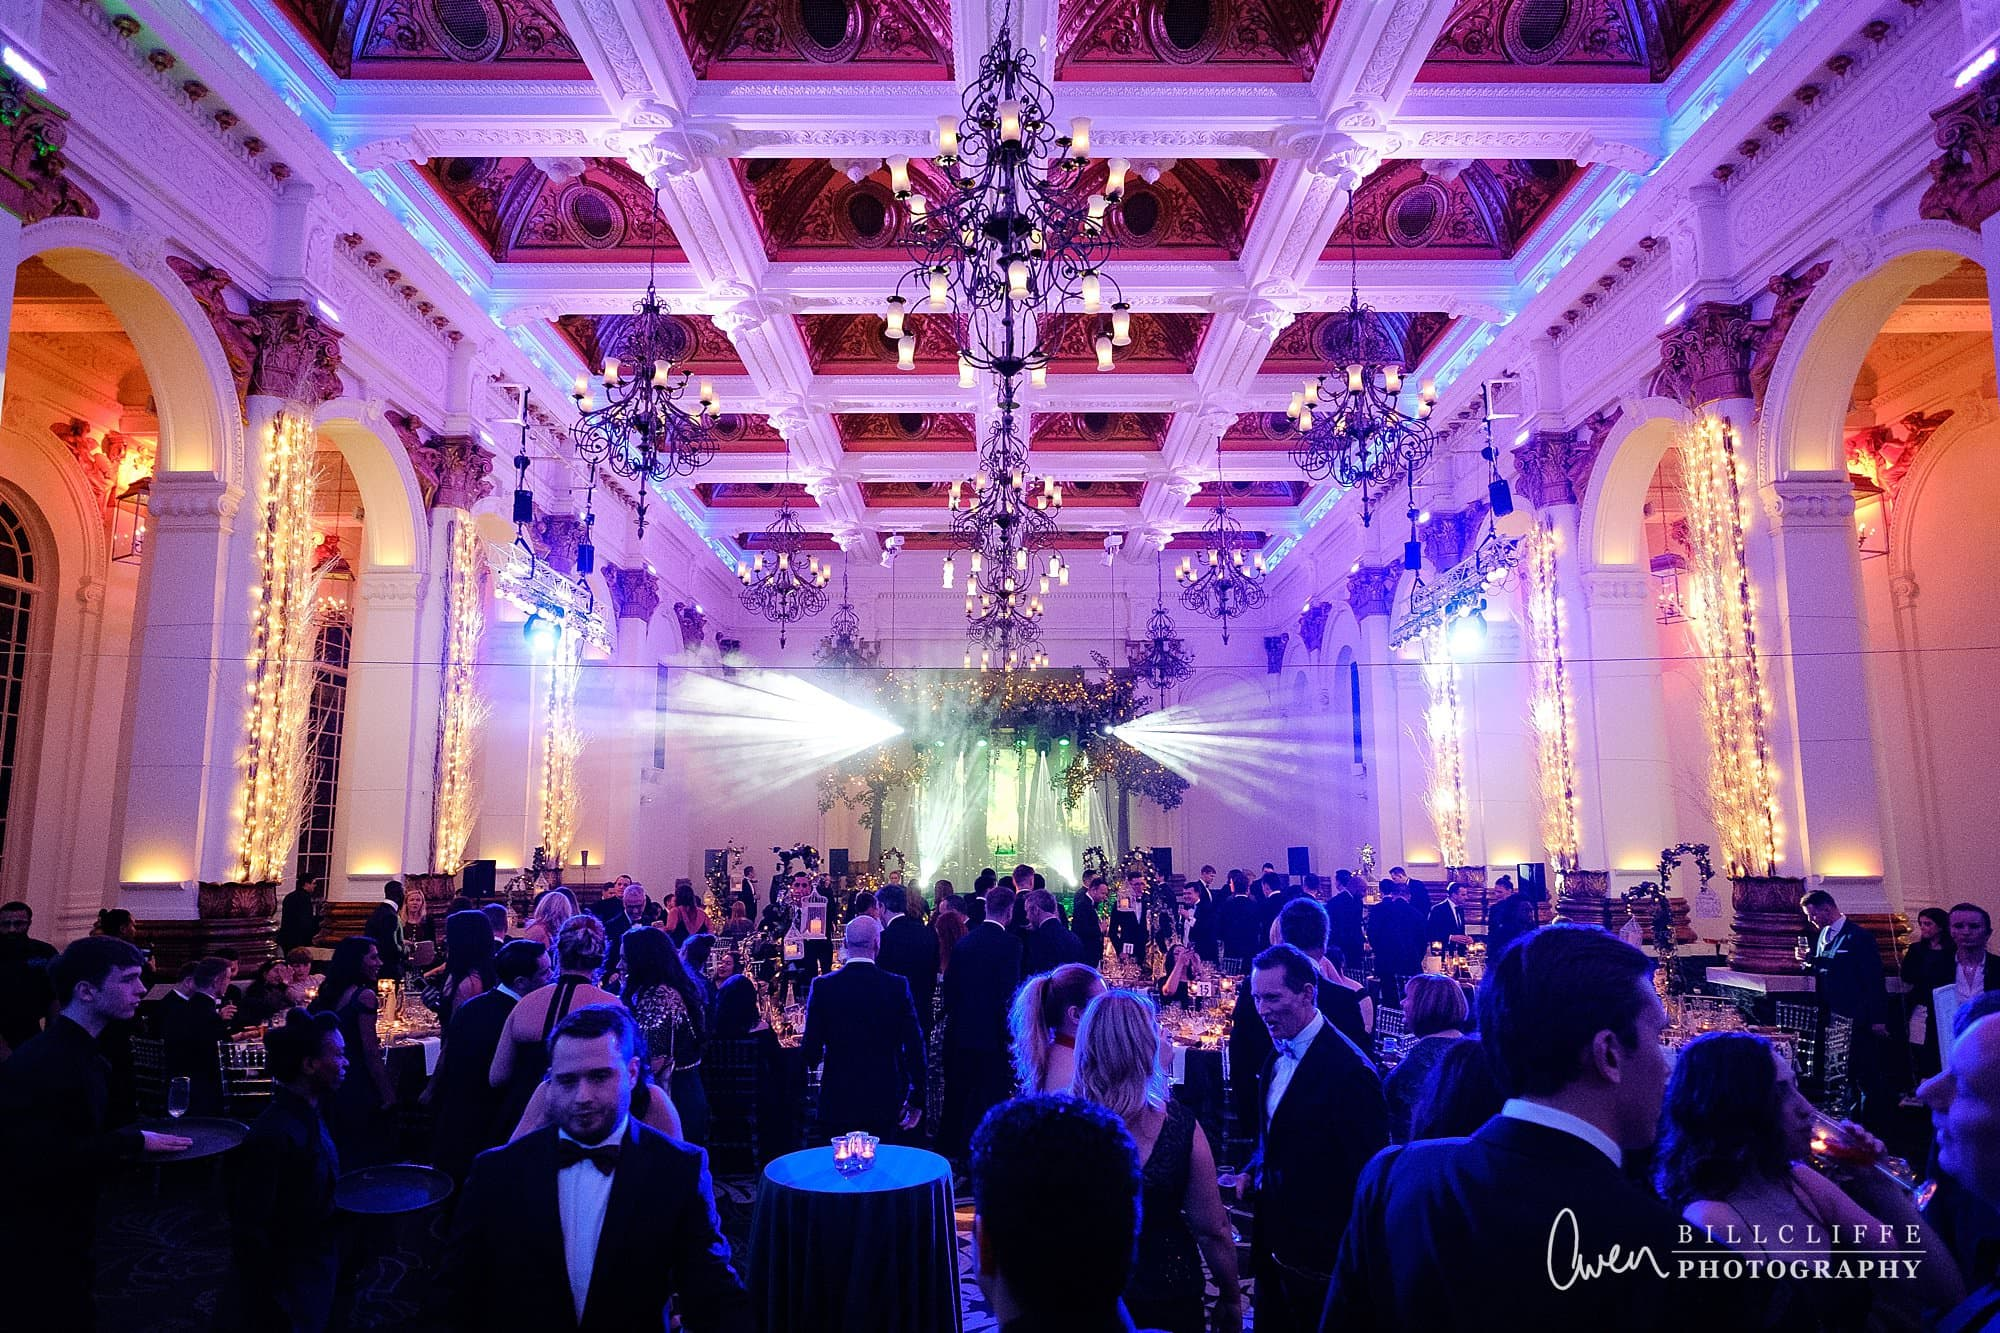 london event photographer 8 northumberland avenue mh 003 - A Christmas Party at 8 Northumberland